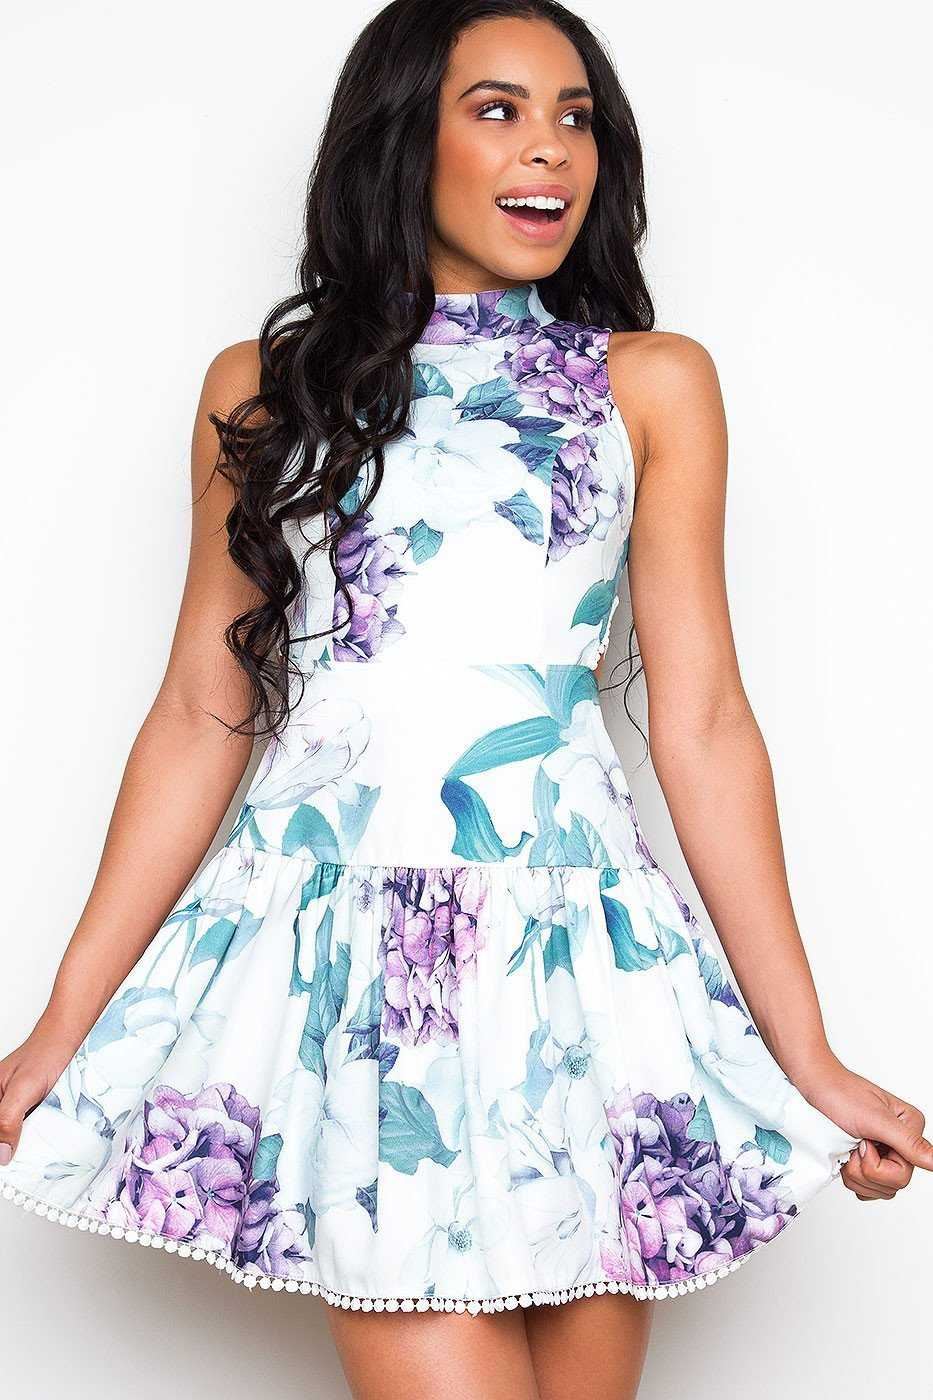 Dresses - Totally In Love Floral Dress